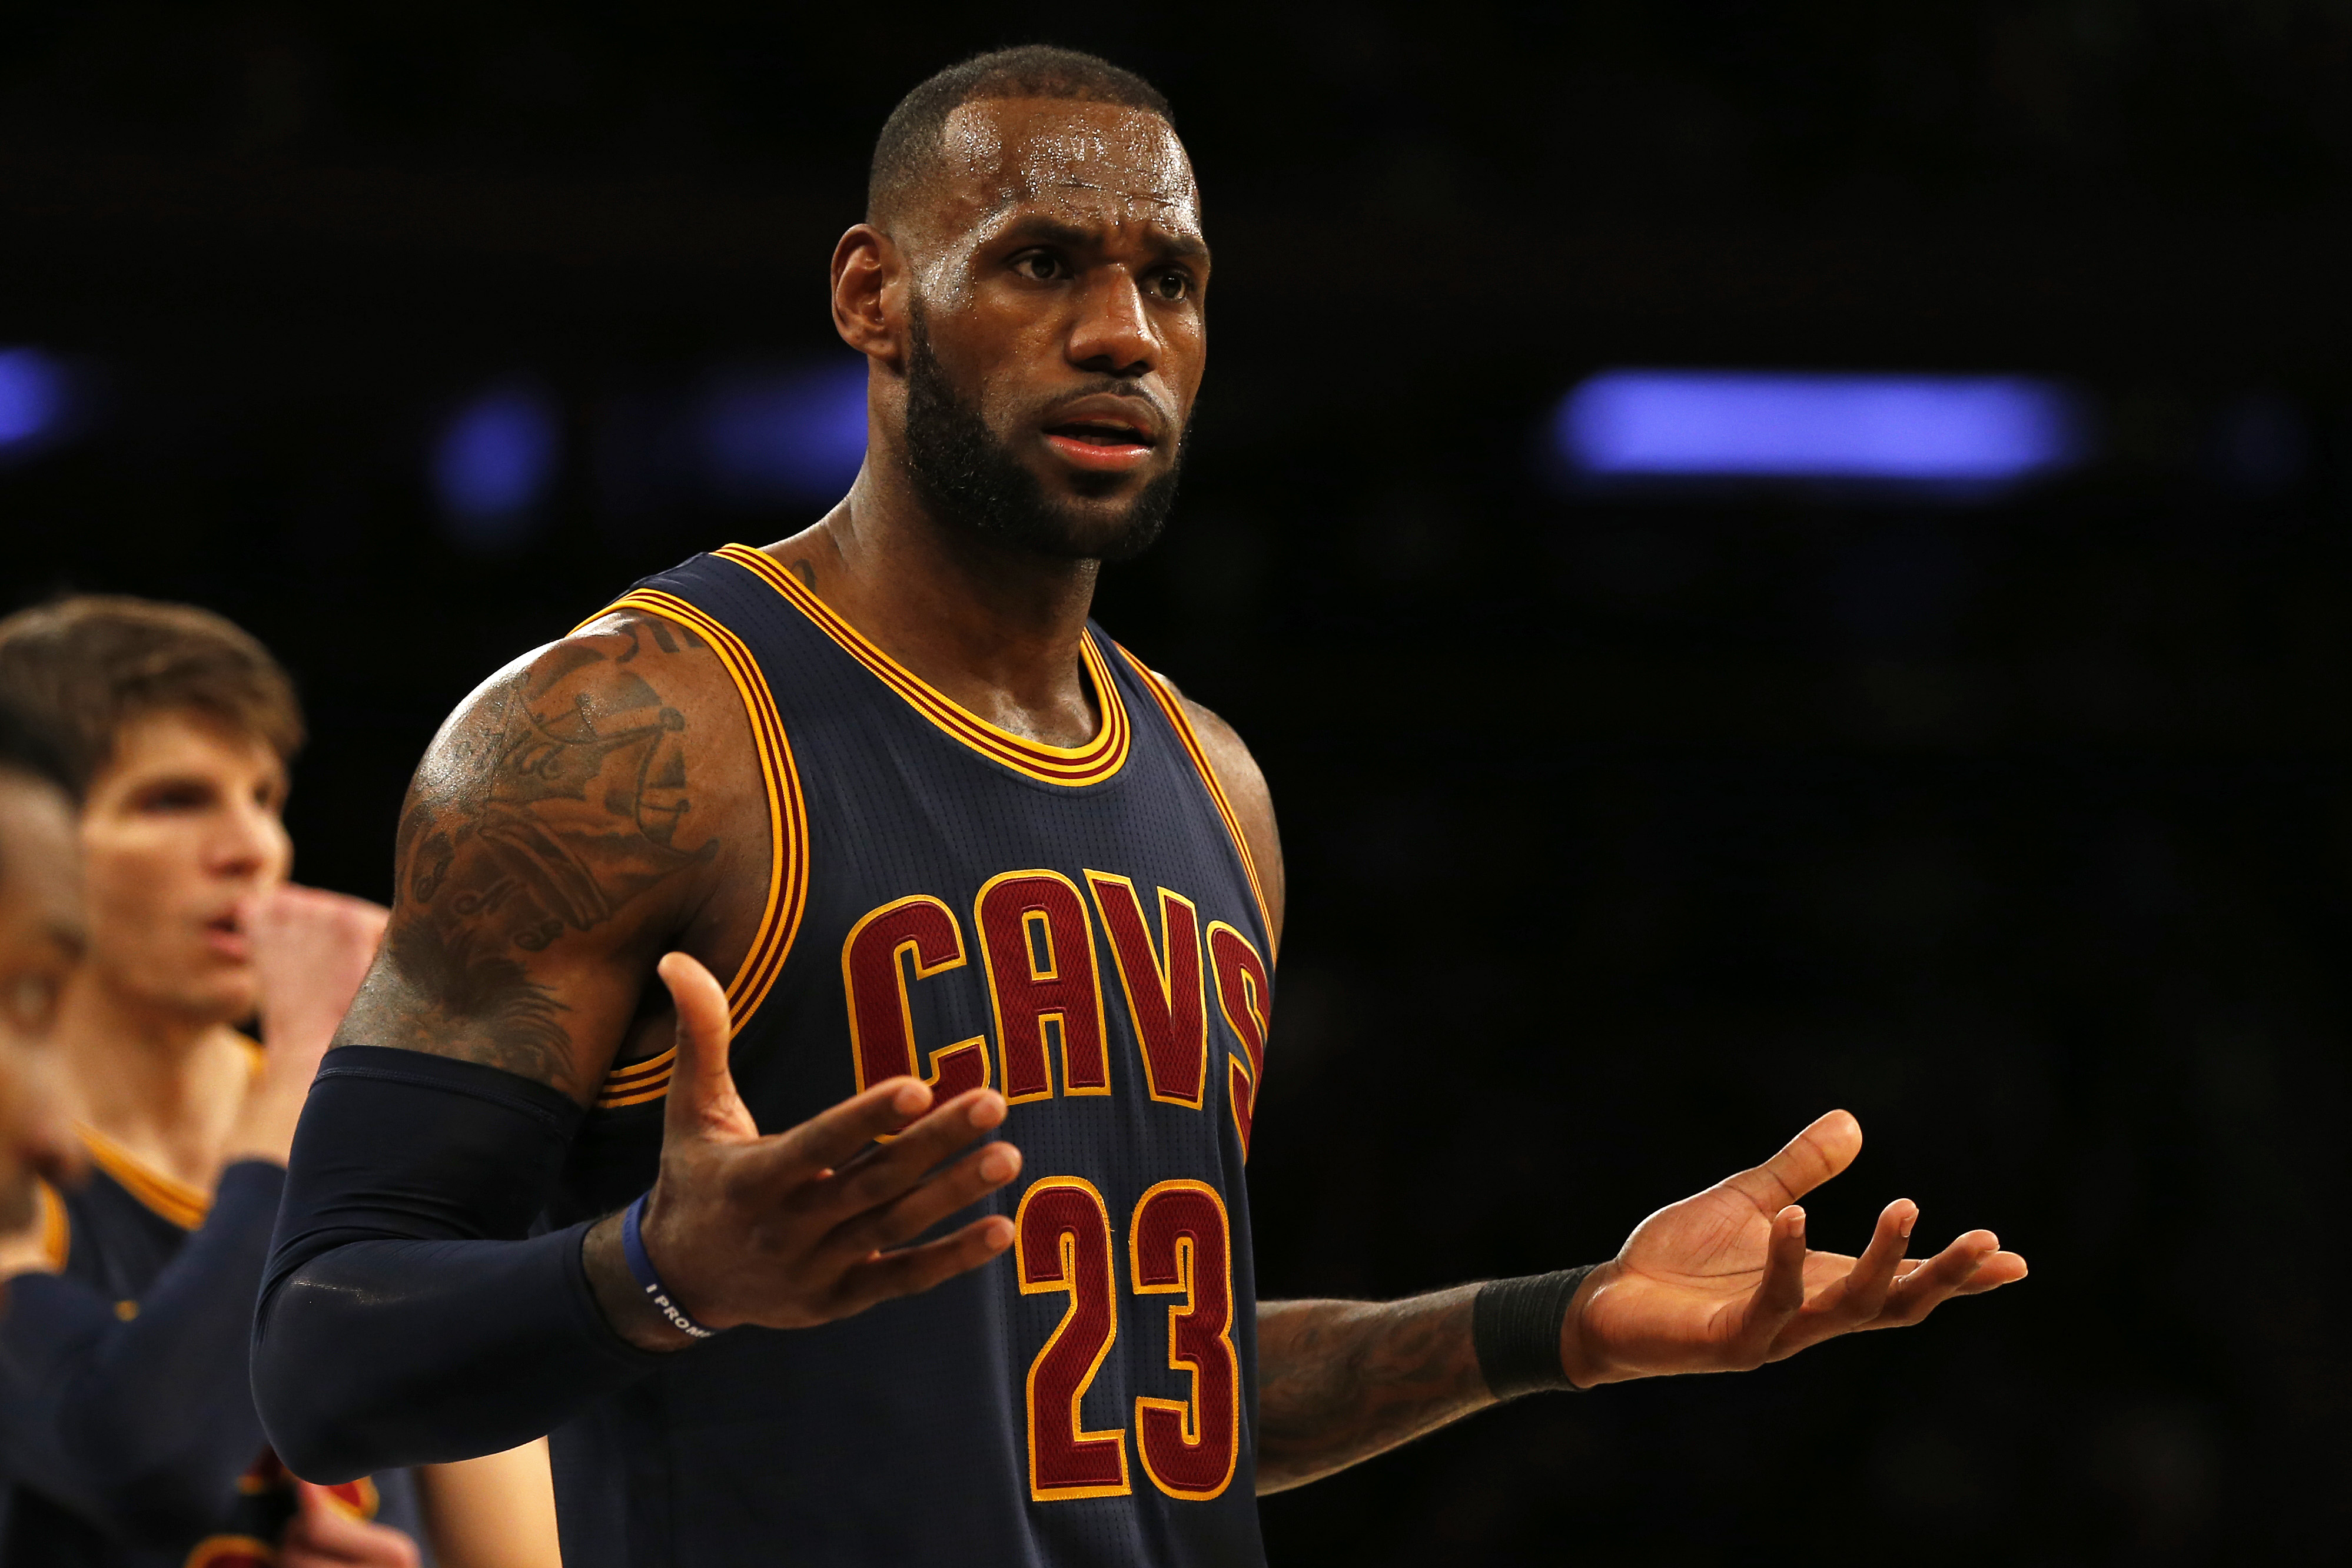 9859577-nba-cleveland-cavaliers-at-new-york-knicks